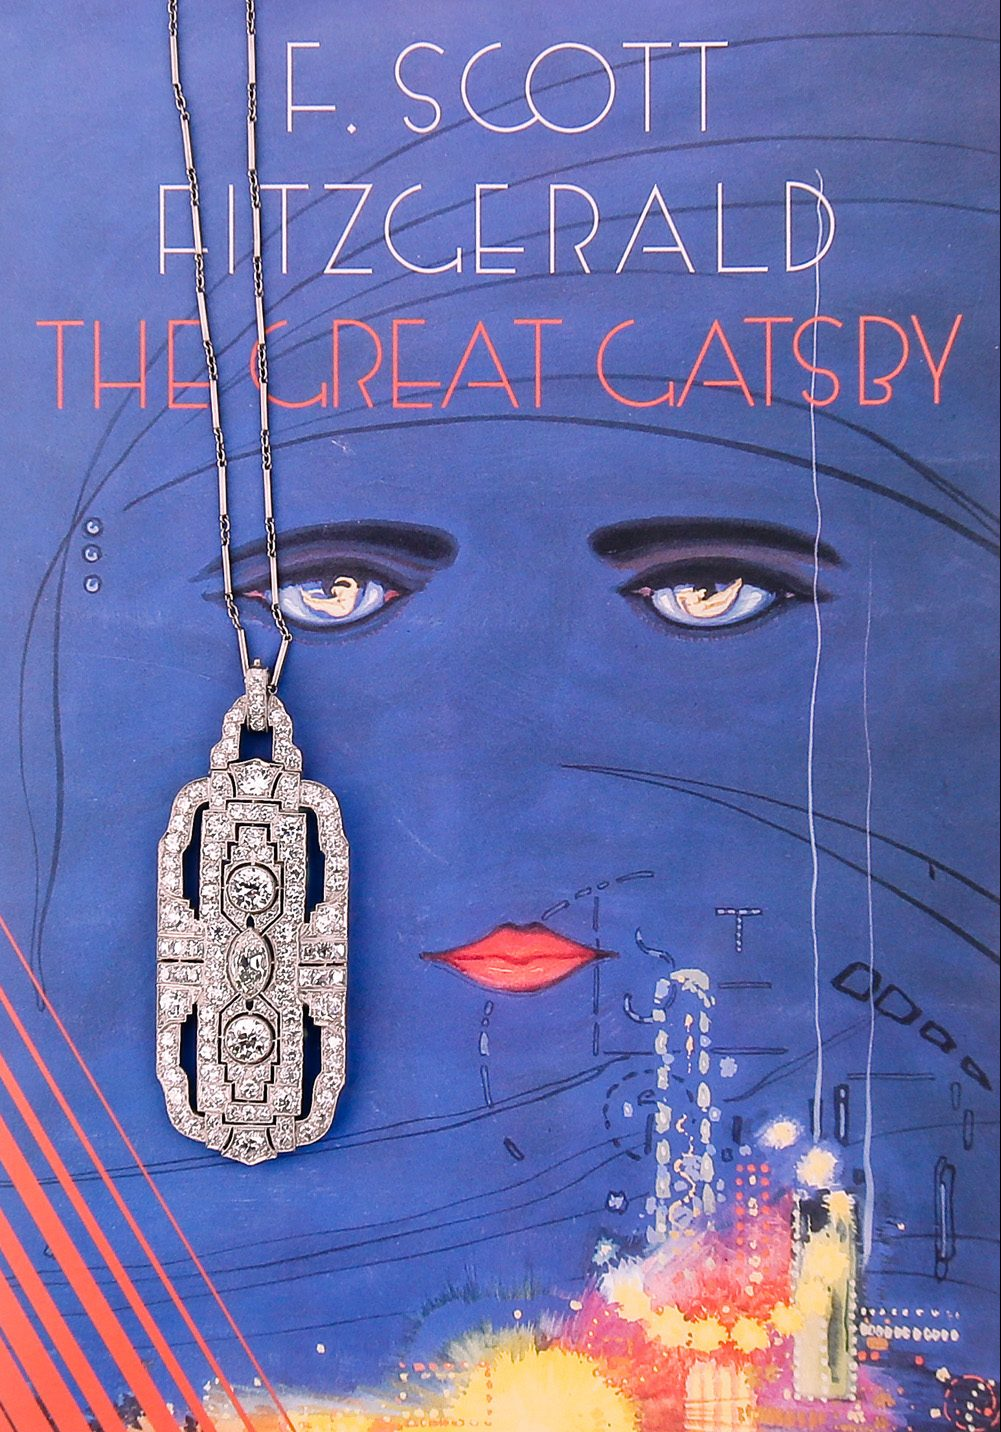 Art Deco Style Diamond Necklace on Top of F. Scott Fitzgerald's Great Gatsby Book